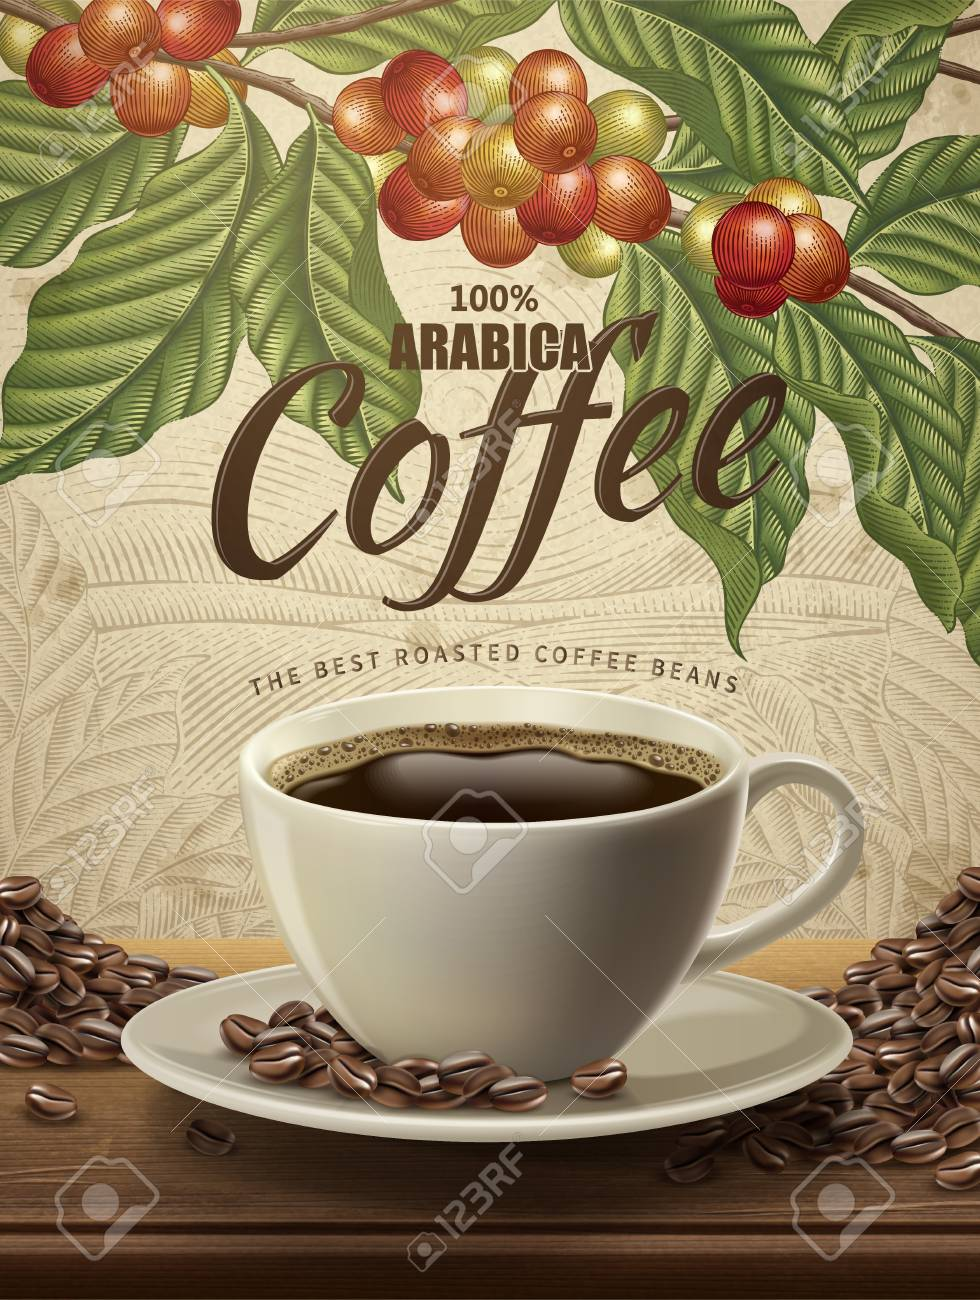 Arabica coffee ads, realistic black coffee and beans in 3d illustration with retro coffee plants and field scenery in etching shading style - 95737711